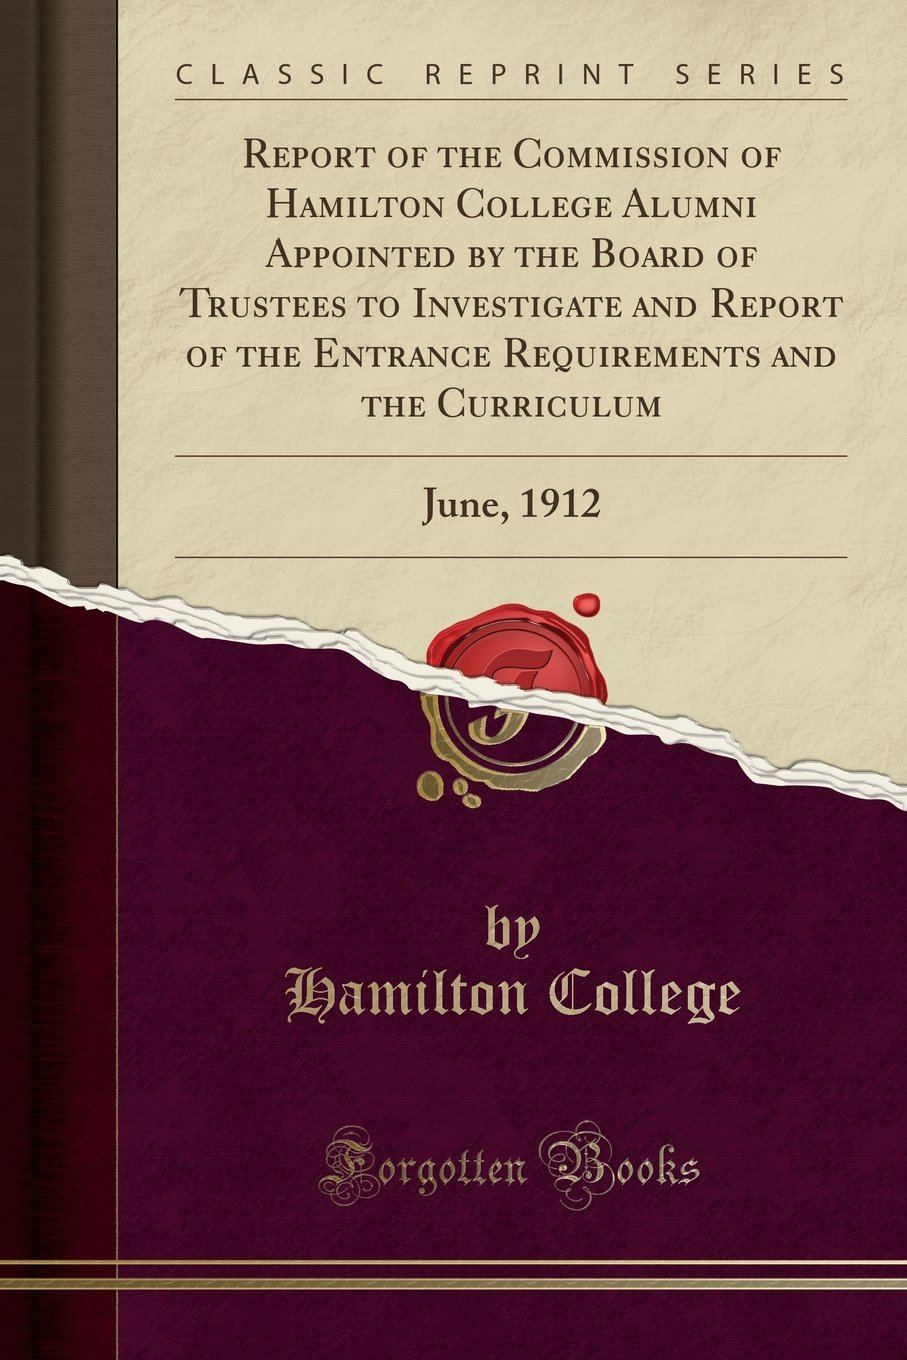 Report of the Commission of Hamilton College Alumni Appointed by the Board of Trustees to Investigate and Report of the Entrance Requirements and the Curriculum: June, 1912 (Classic Reprint) pdf